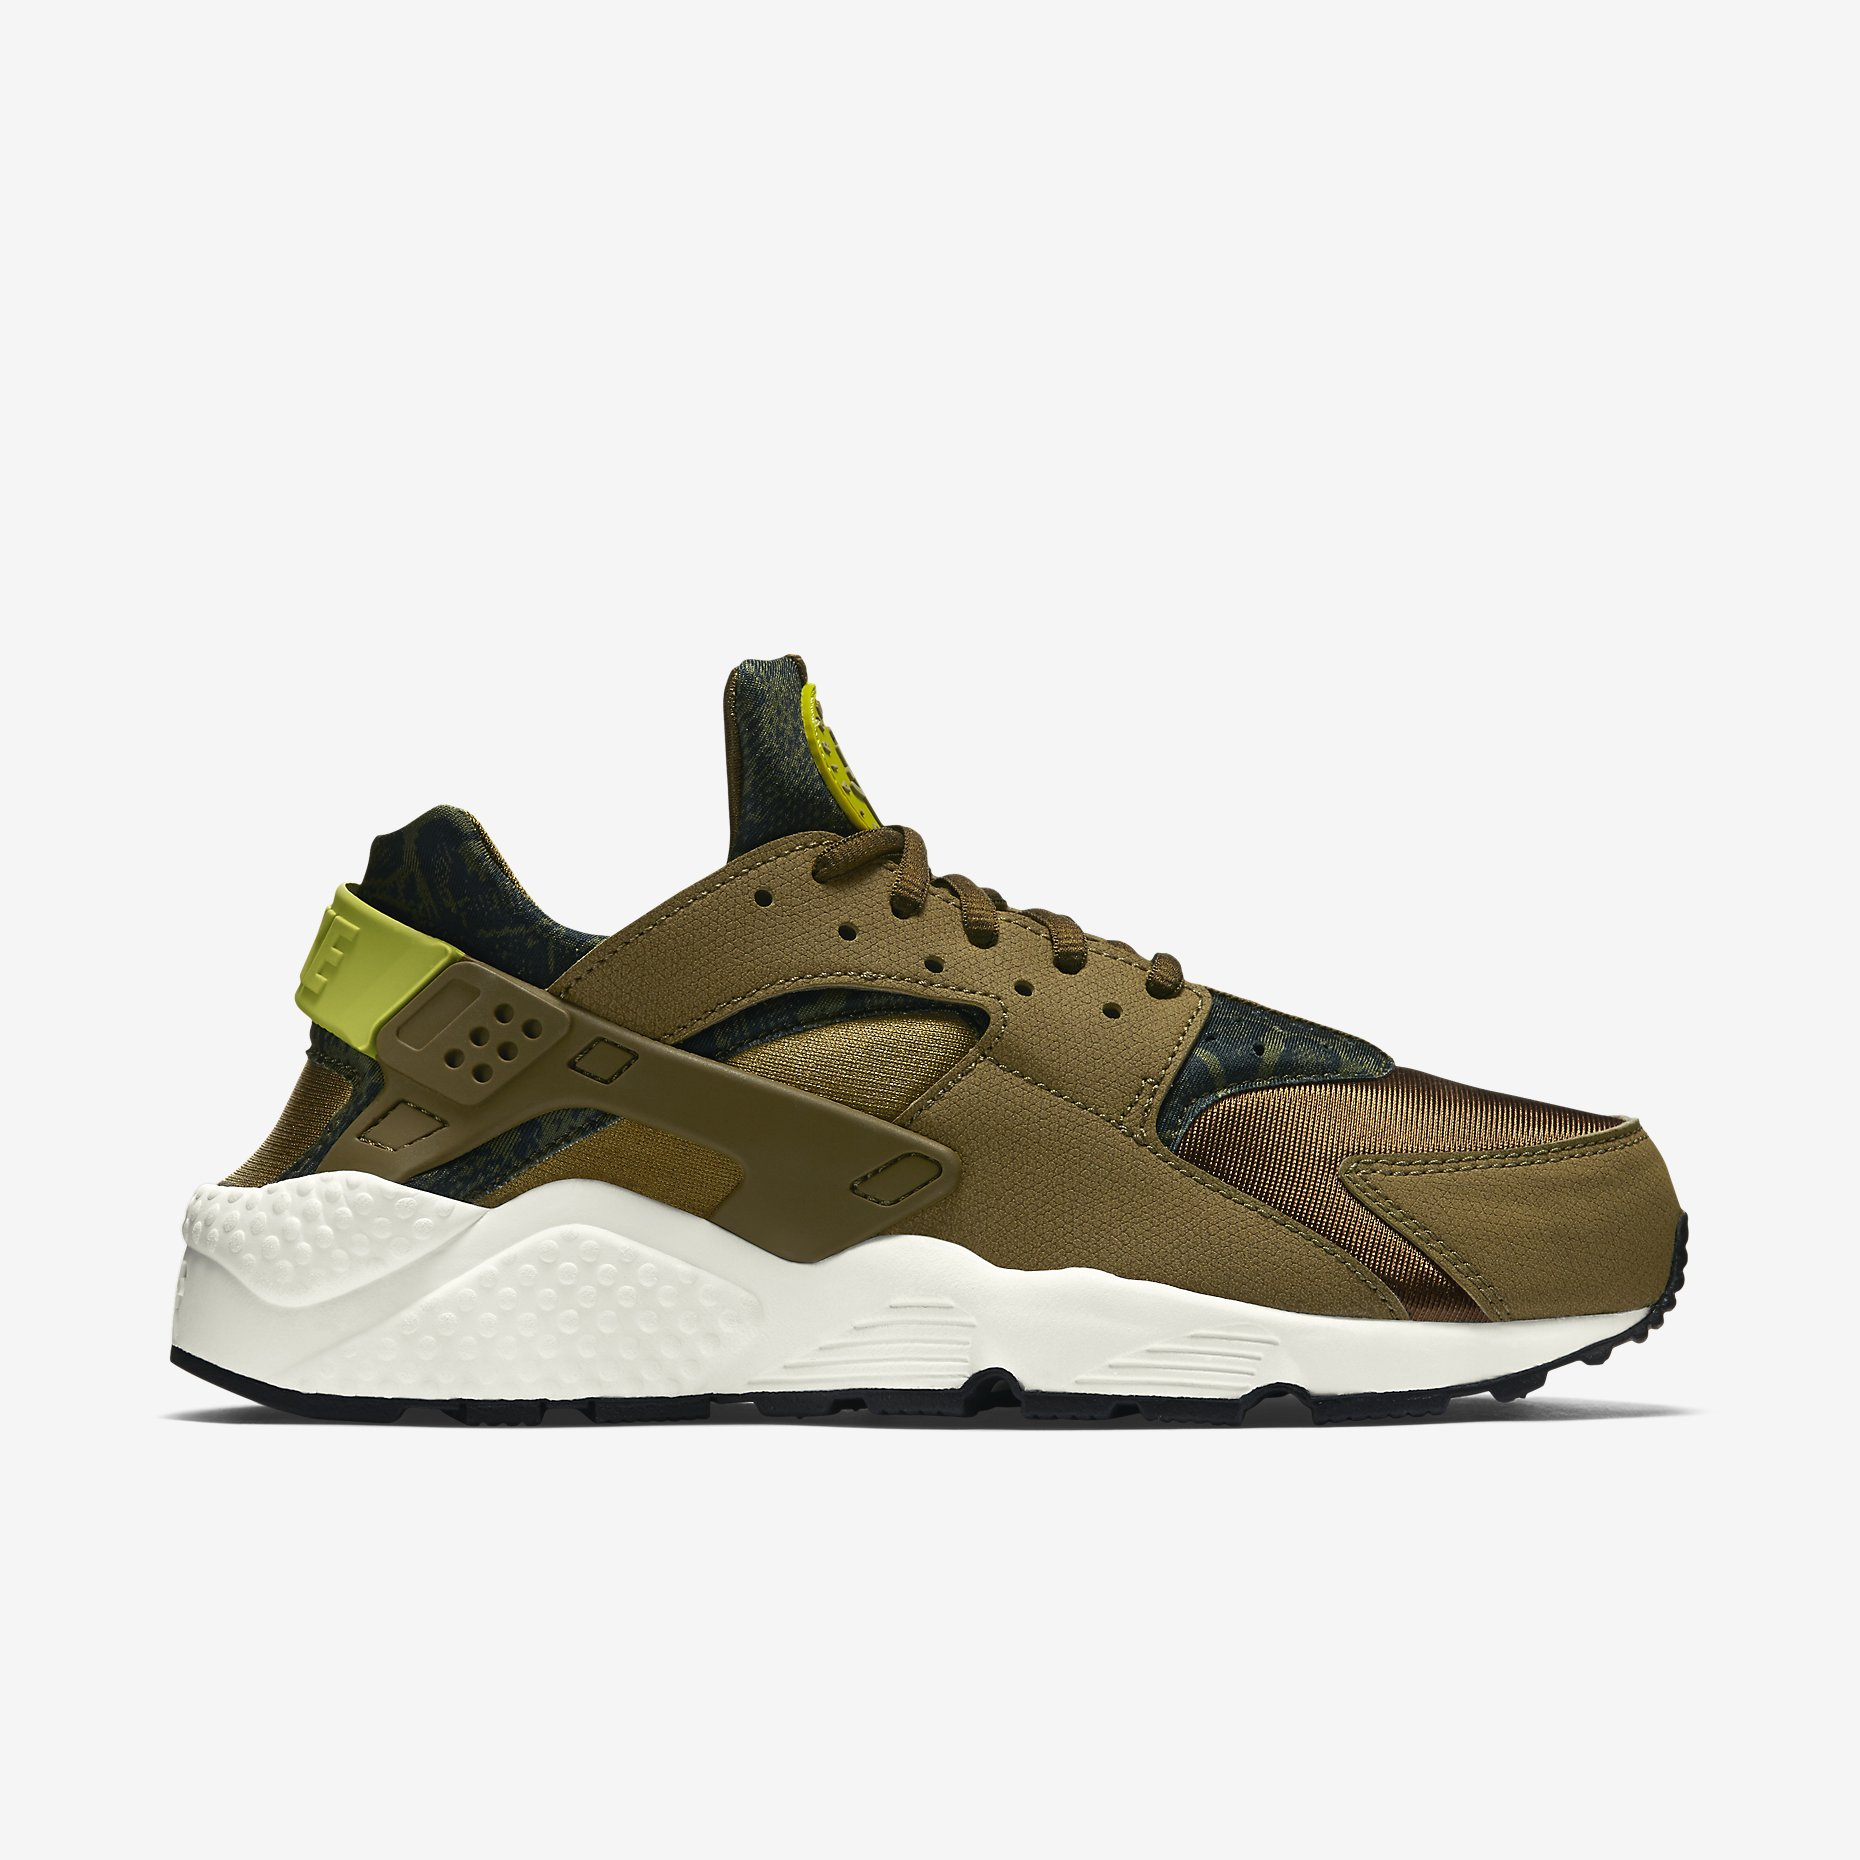 nike huarache femme vert kaki timberland pour b b pas cher. Black Bedroom Furniture Sets. Home Design Ideas